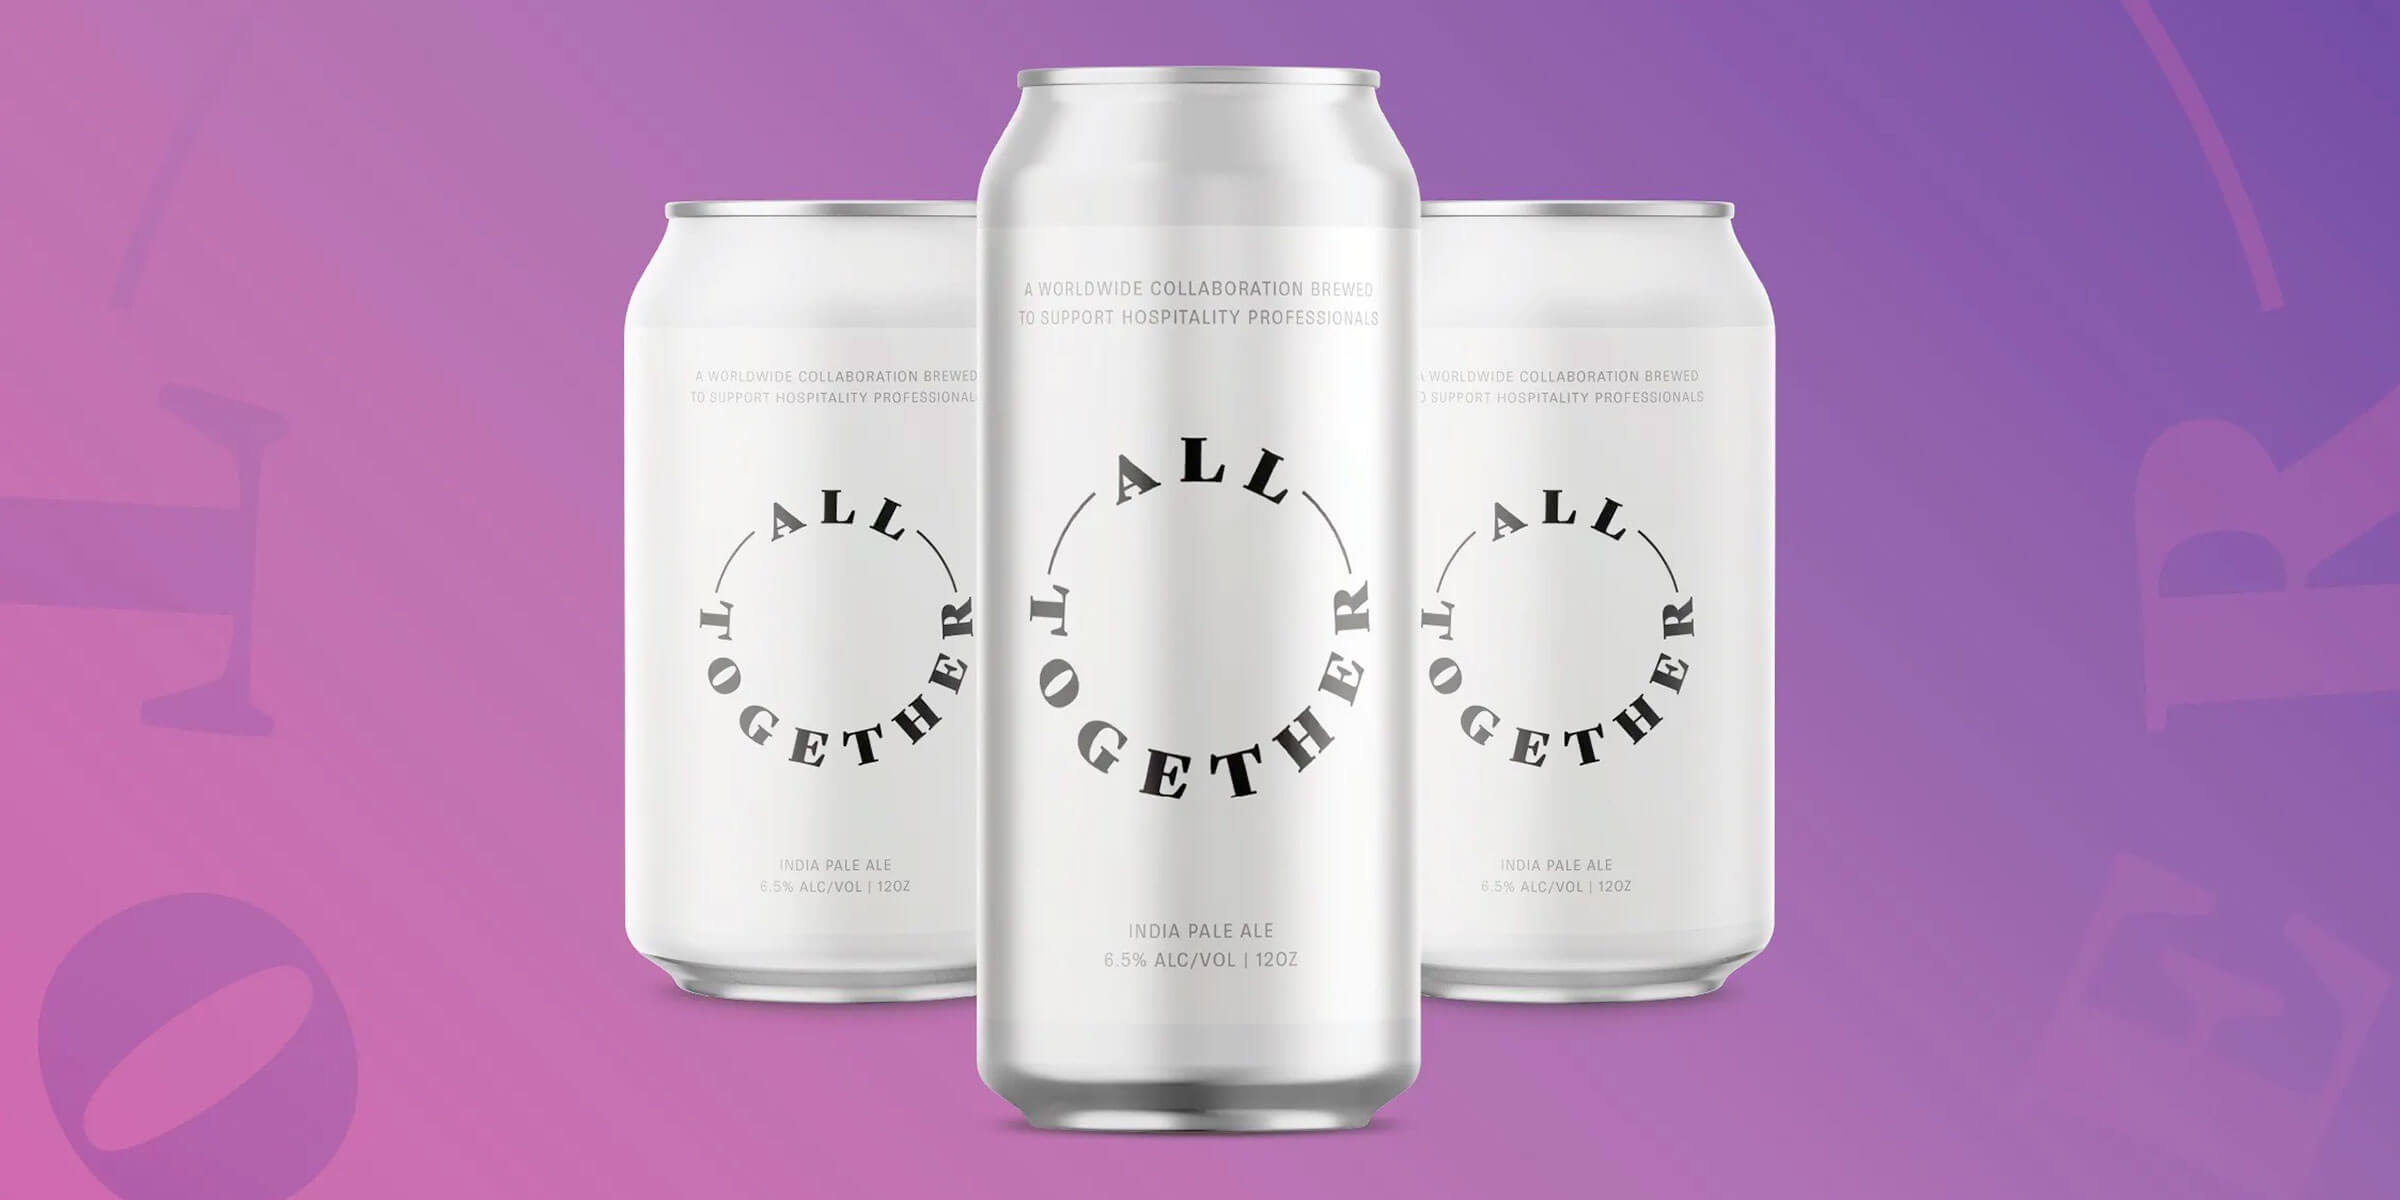 The team at Other Half Brewing Company announced All Together, a worldwide beer collaboration created to raise funds and awareness for the industry we love so much.